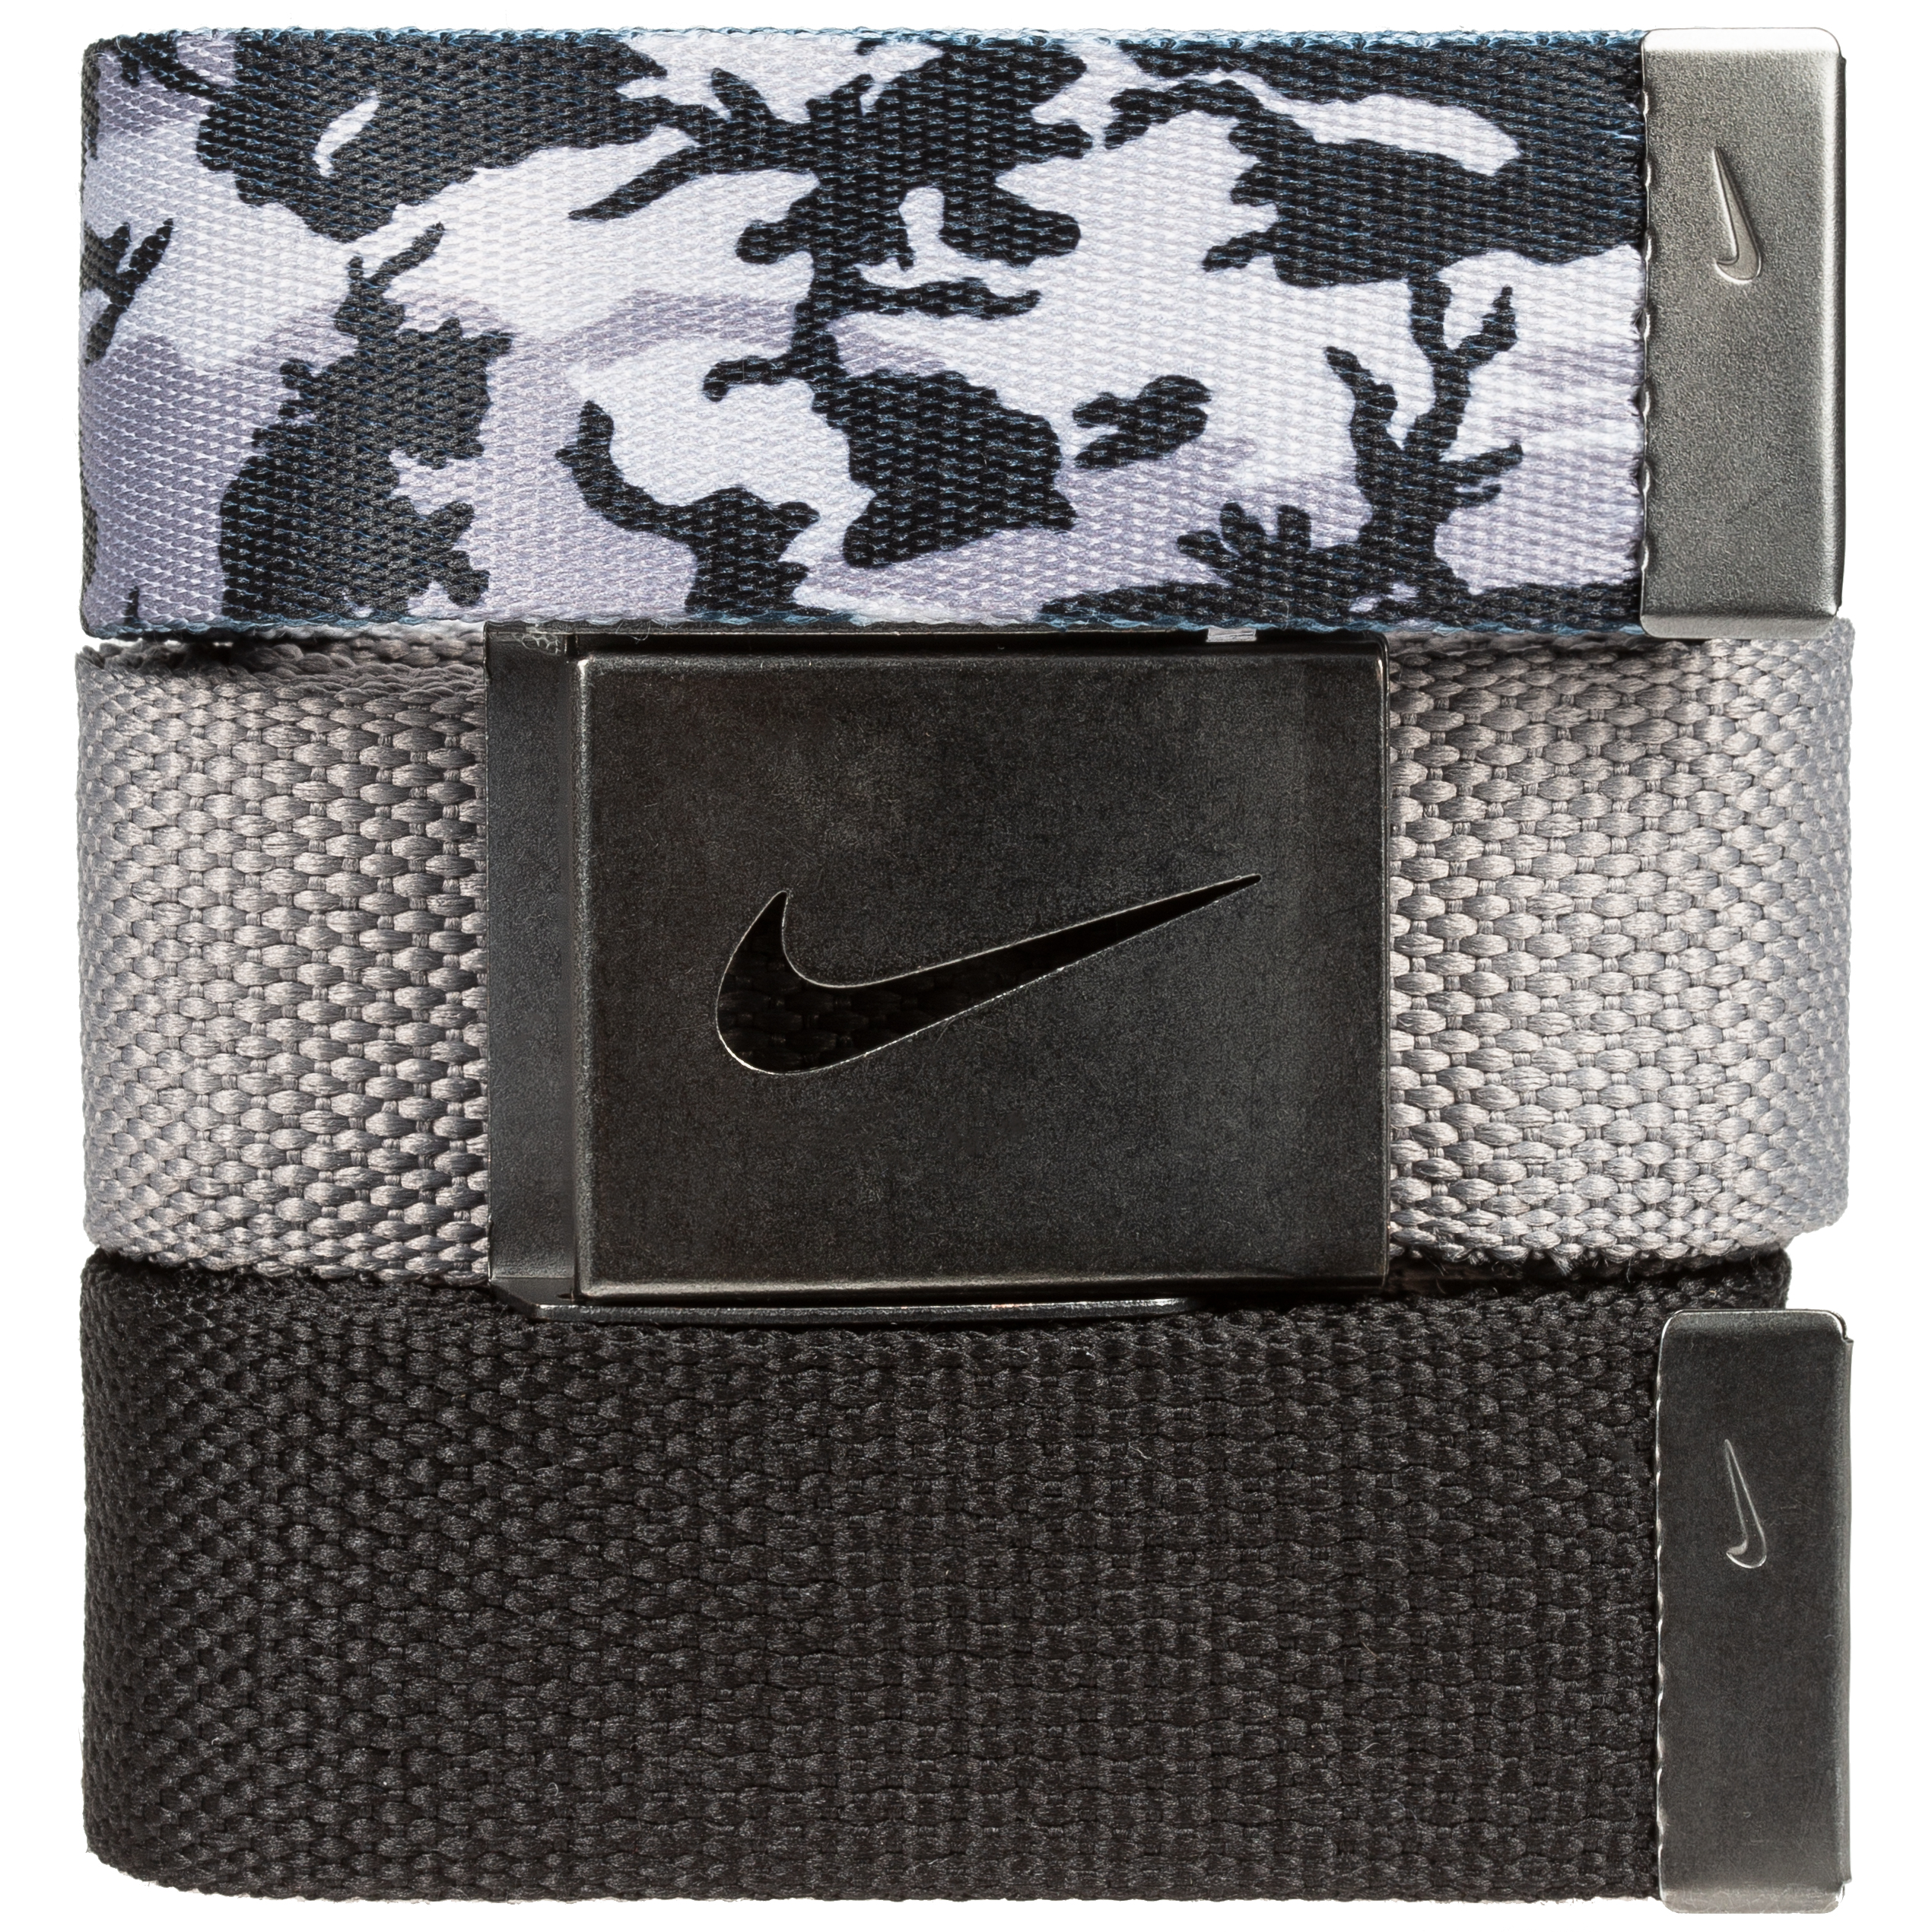 Nike Golf Men's 3 in 1 Web Pack Belts, One Size Fits Most - Select Colors! Black Camo/Grey/Black